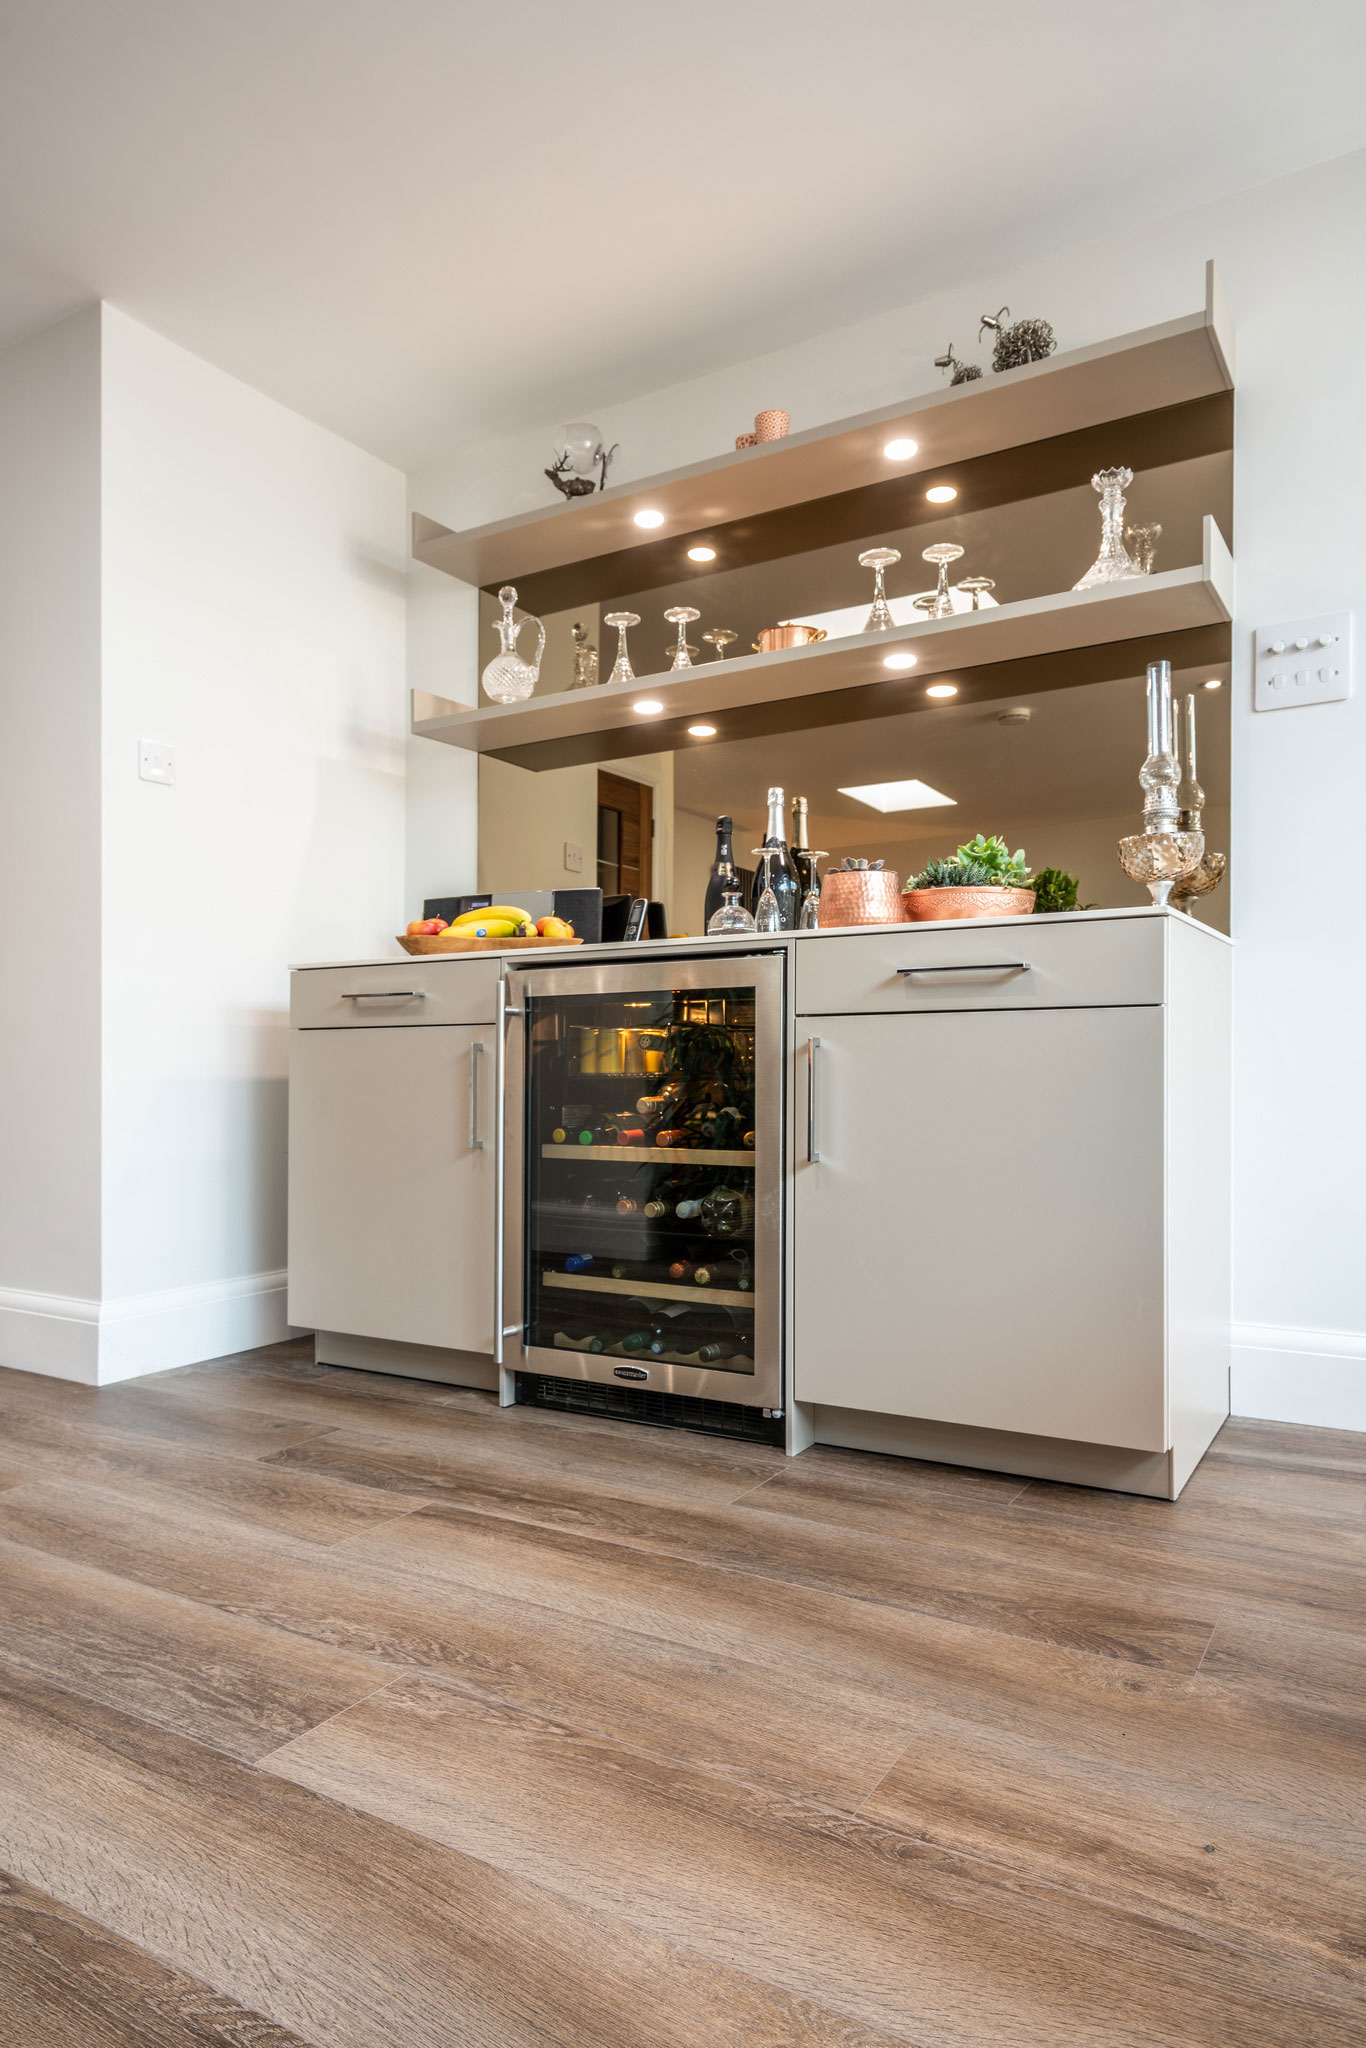 Image of Myers Touch Daniels Kitchen 01139 ZF 2442 14358 1 050 in A space designed for socialising - Cosentino